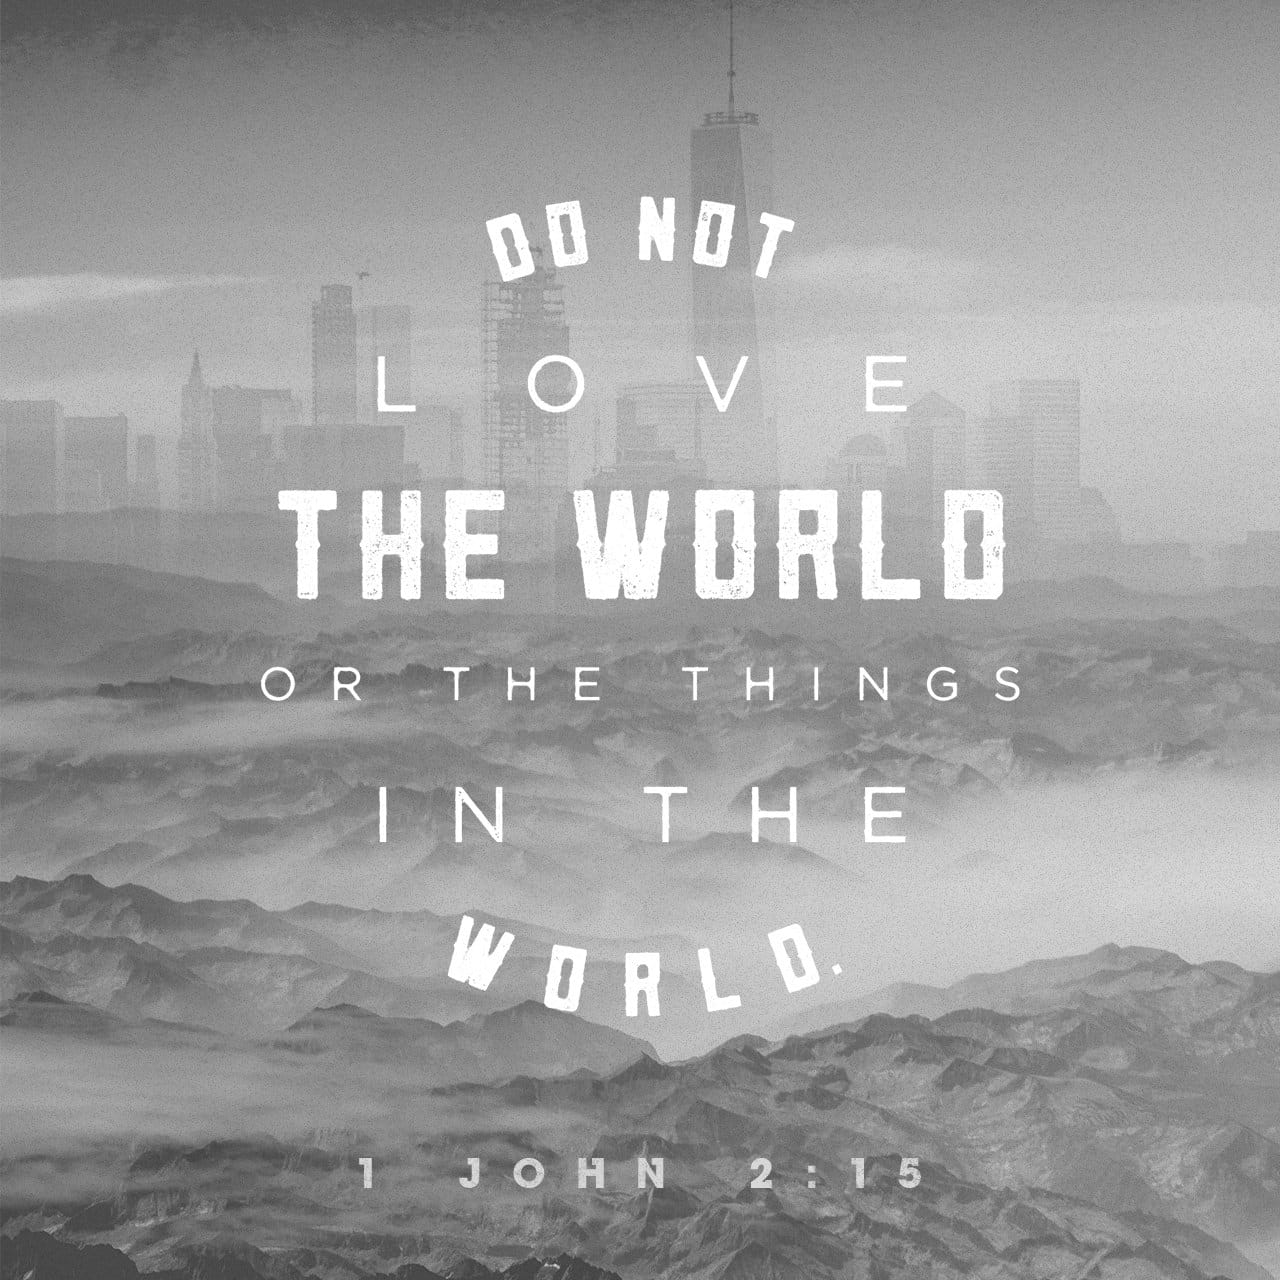 1 John 2:15-17 Do not love this world nor the things it offers you, for when you love the world, you do not have the love of the Father in you. For the world offers only a craving for physical pleasure, a craving fo | New Living Translation (NLT)